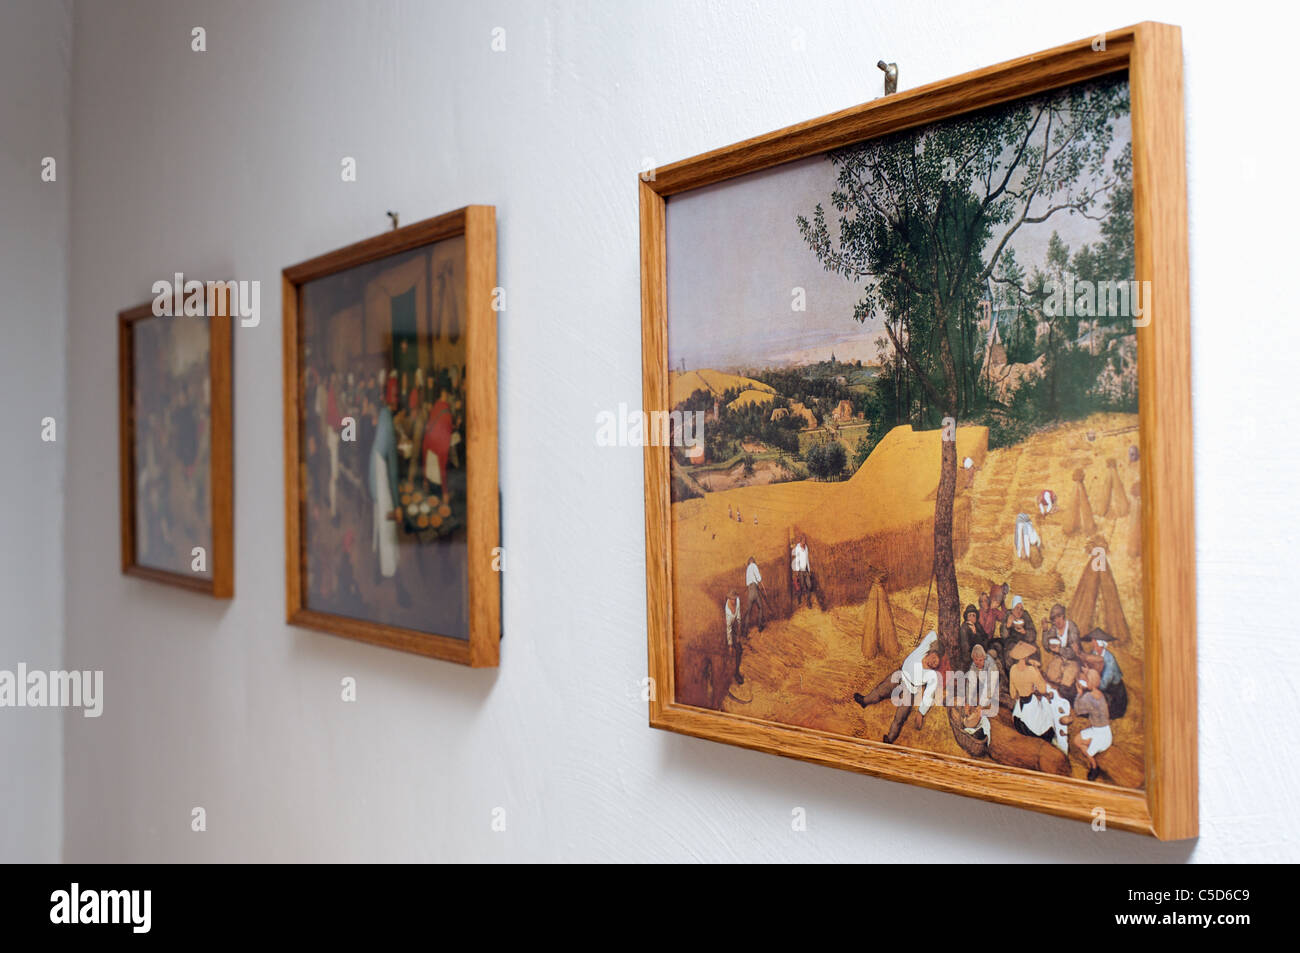 Prints Of Paintings Hanging On Wall Stock Photo 37784441 Alamy